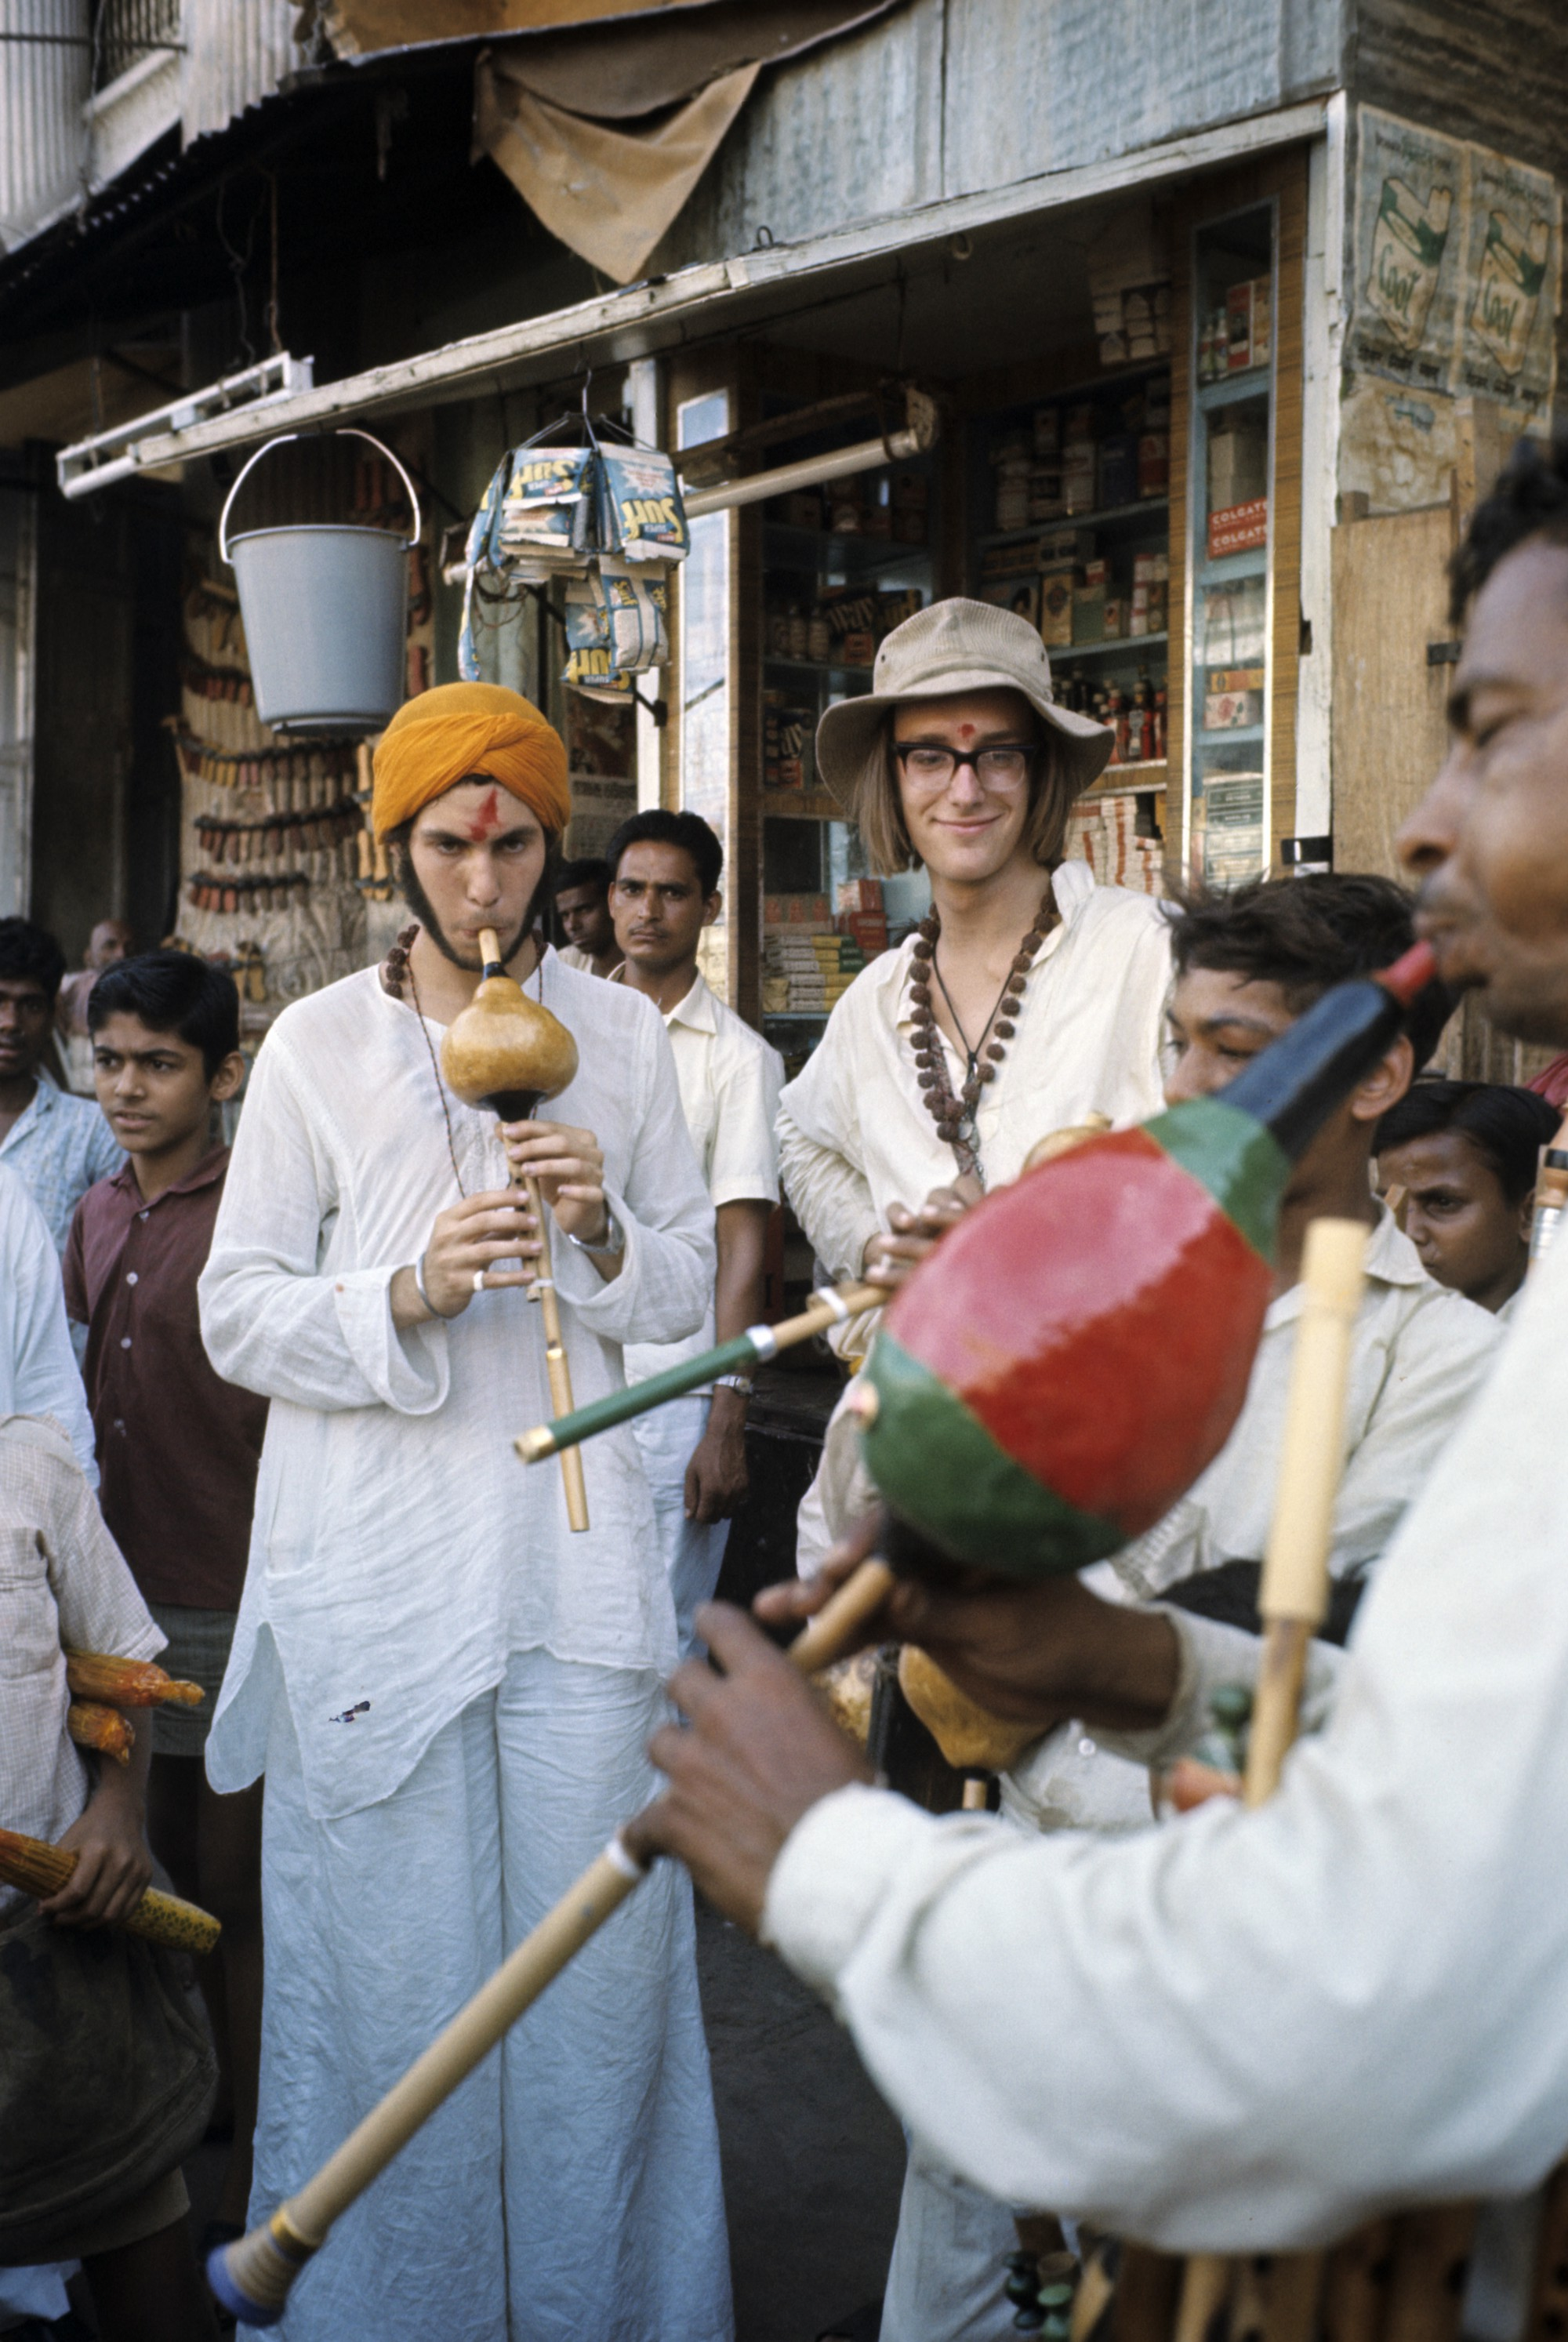 These absurd photos of young travelers on the 'Hippie Trail' raise a lot of questions